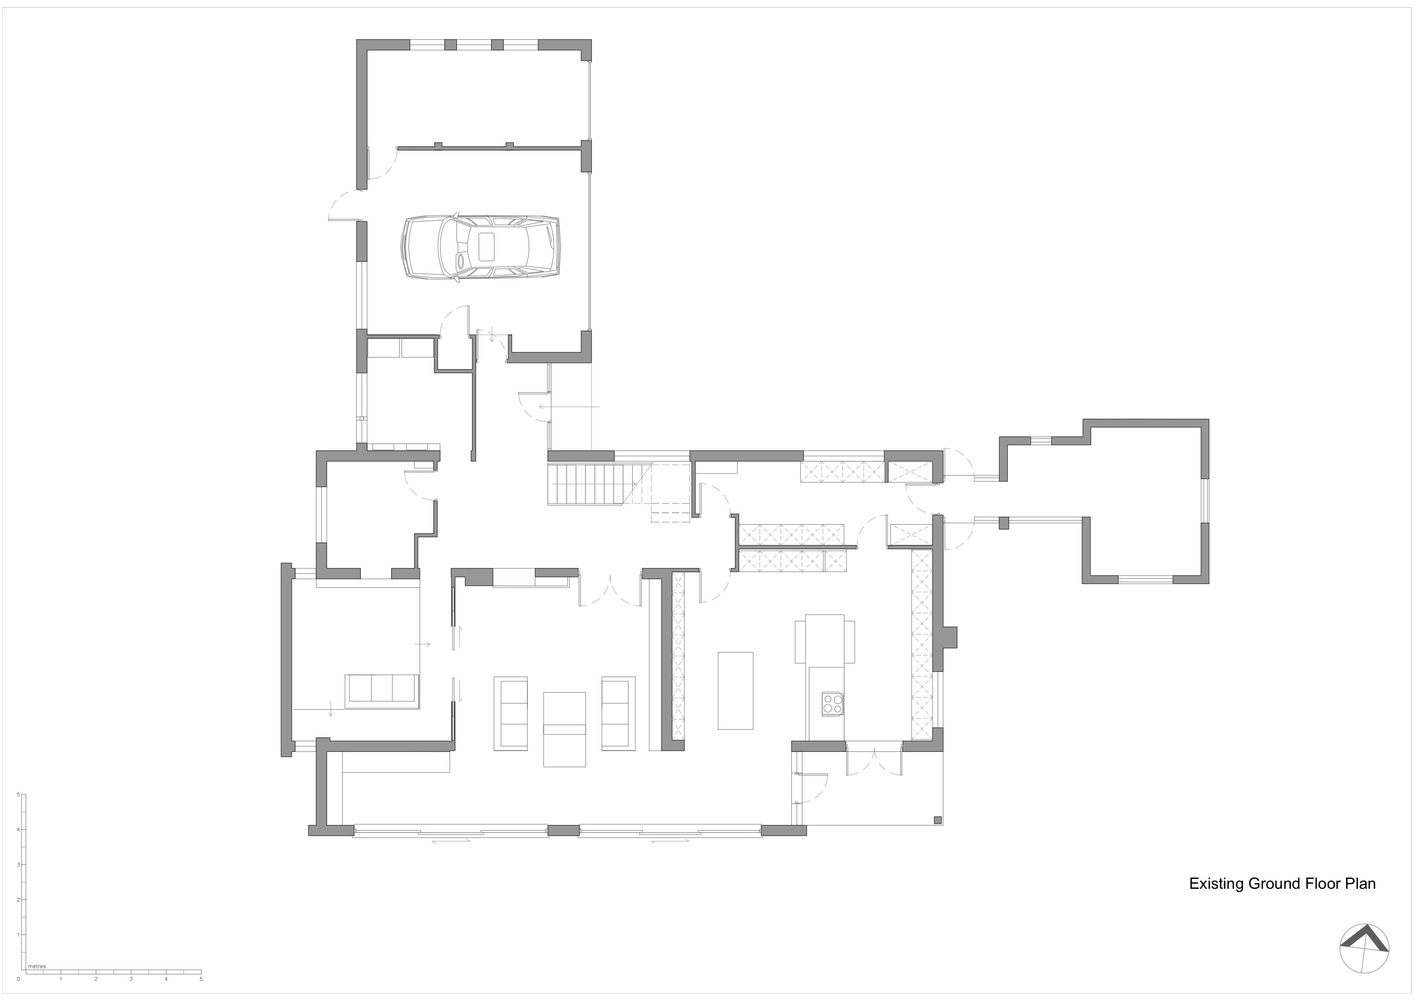 How to draw a floor plan of an existing house for Floor plans for existing homes